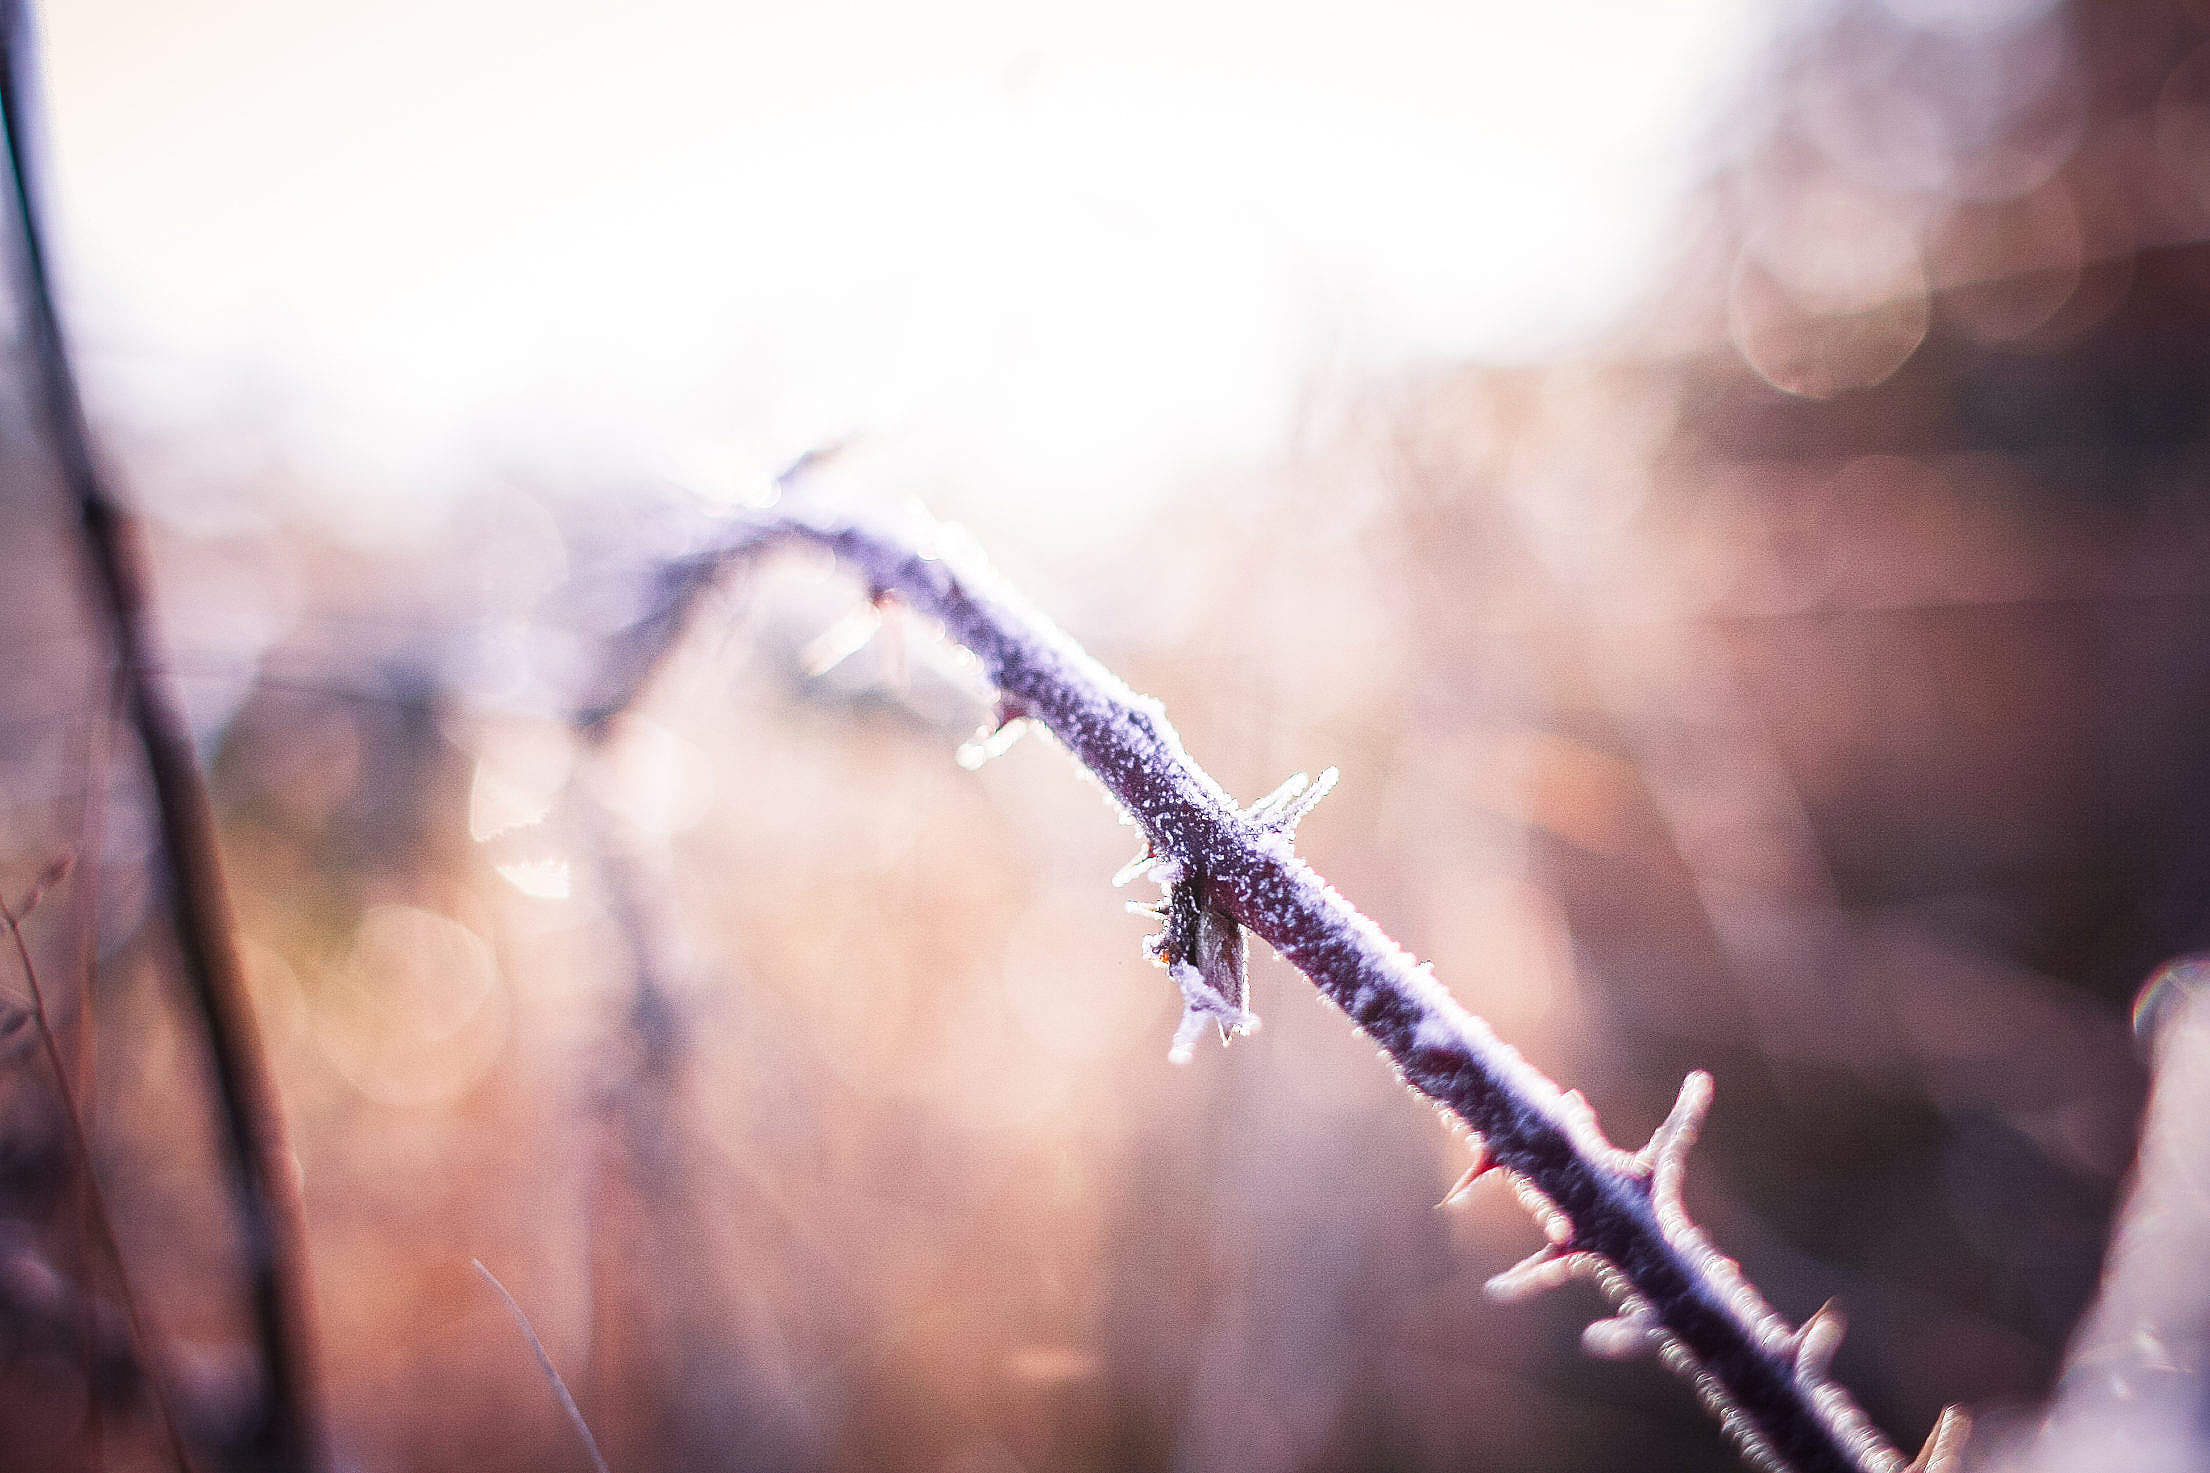 Morning Winter Hoarfrost on a Prickly Bush Free Stock Photo